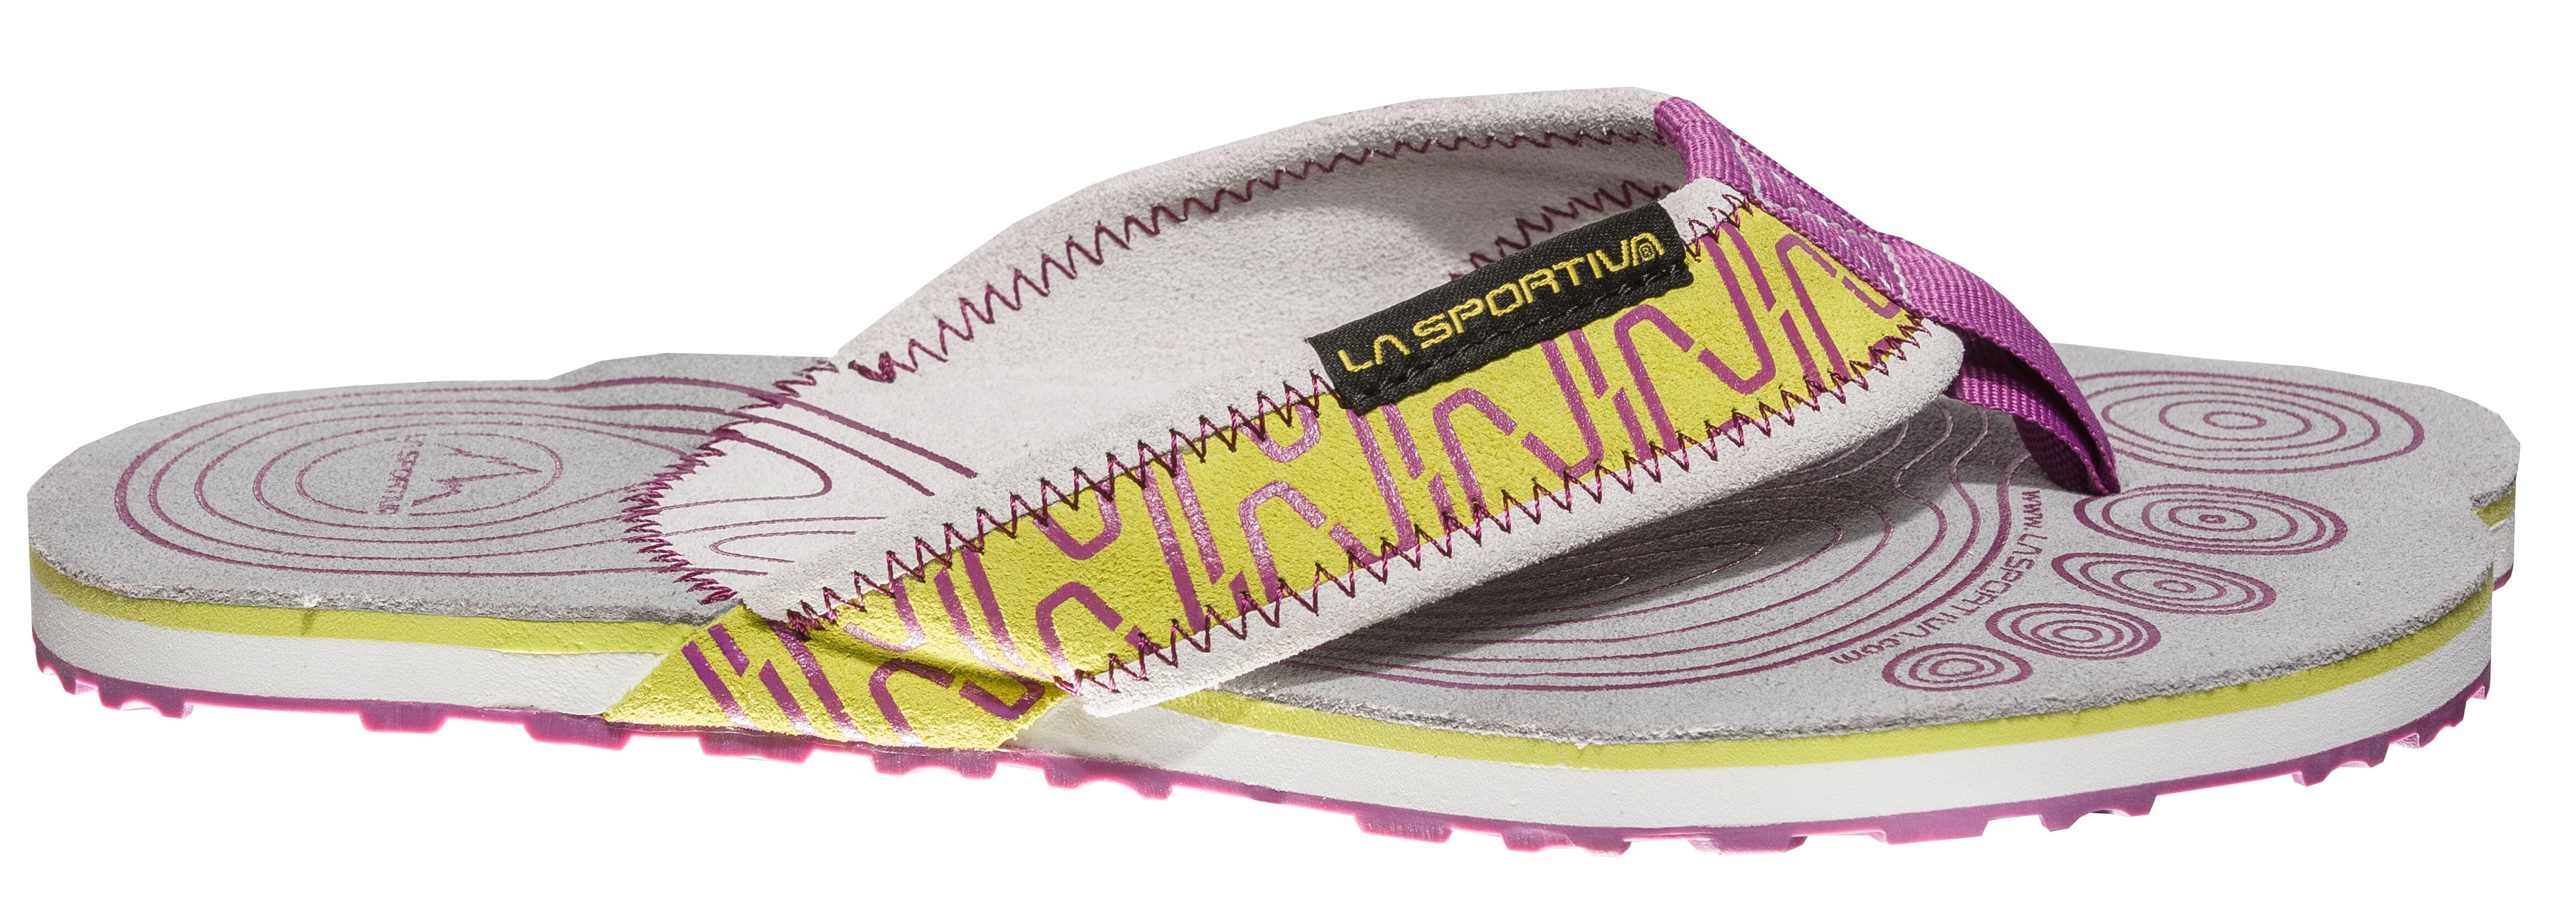 La-sportiva-swing-purple-apple-green-6